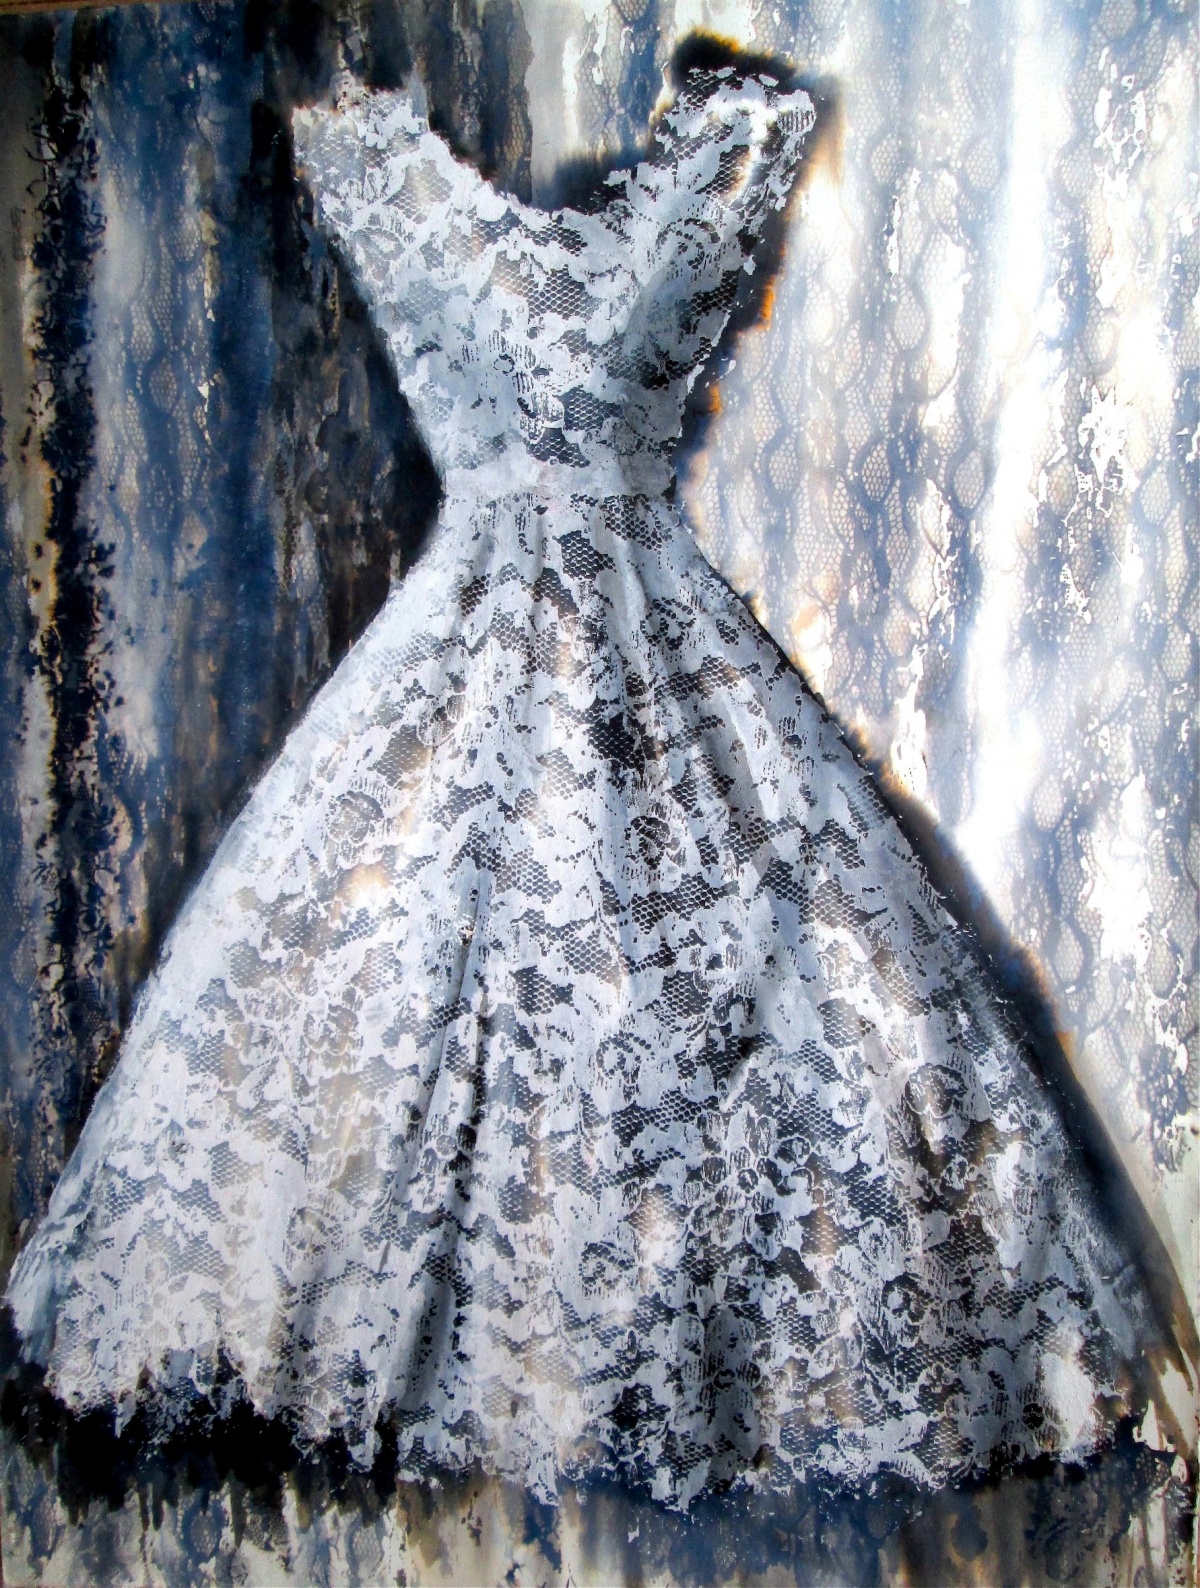 12 - Aurelia's Dress by Suzsi Corio